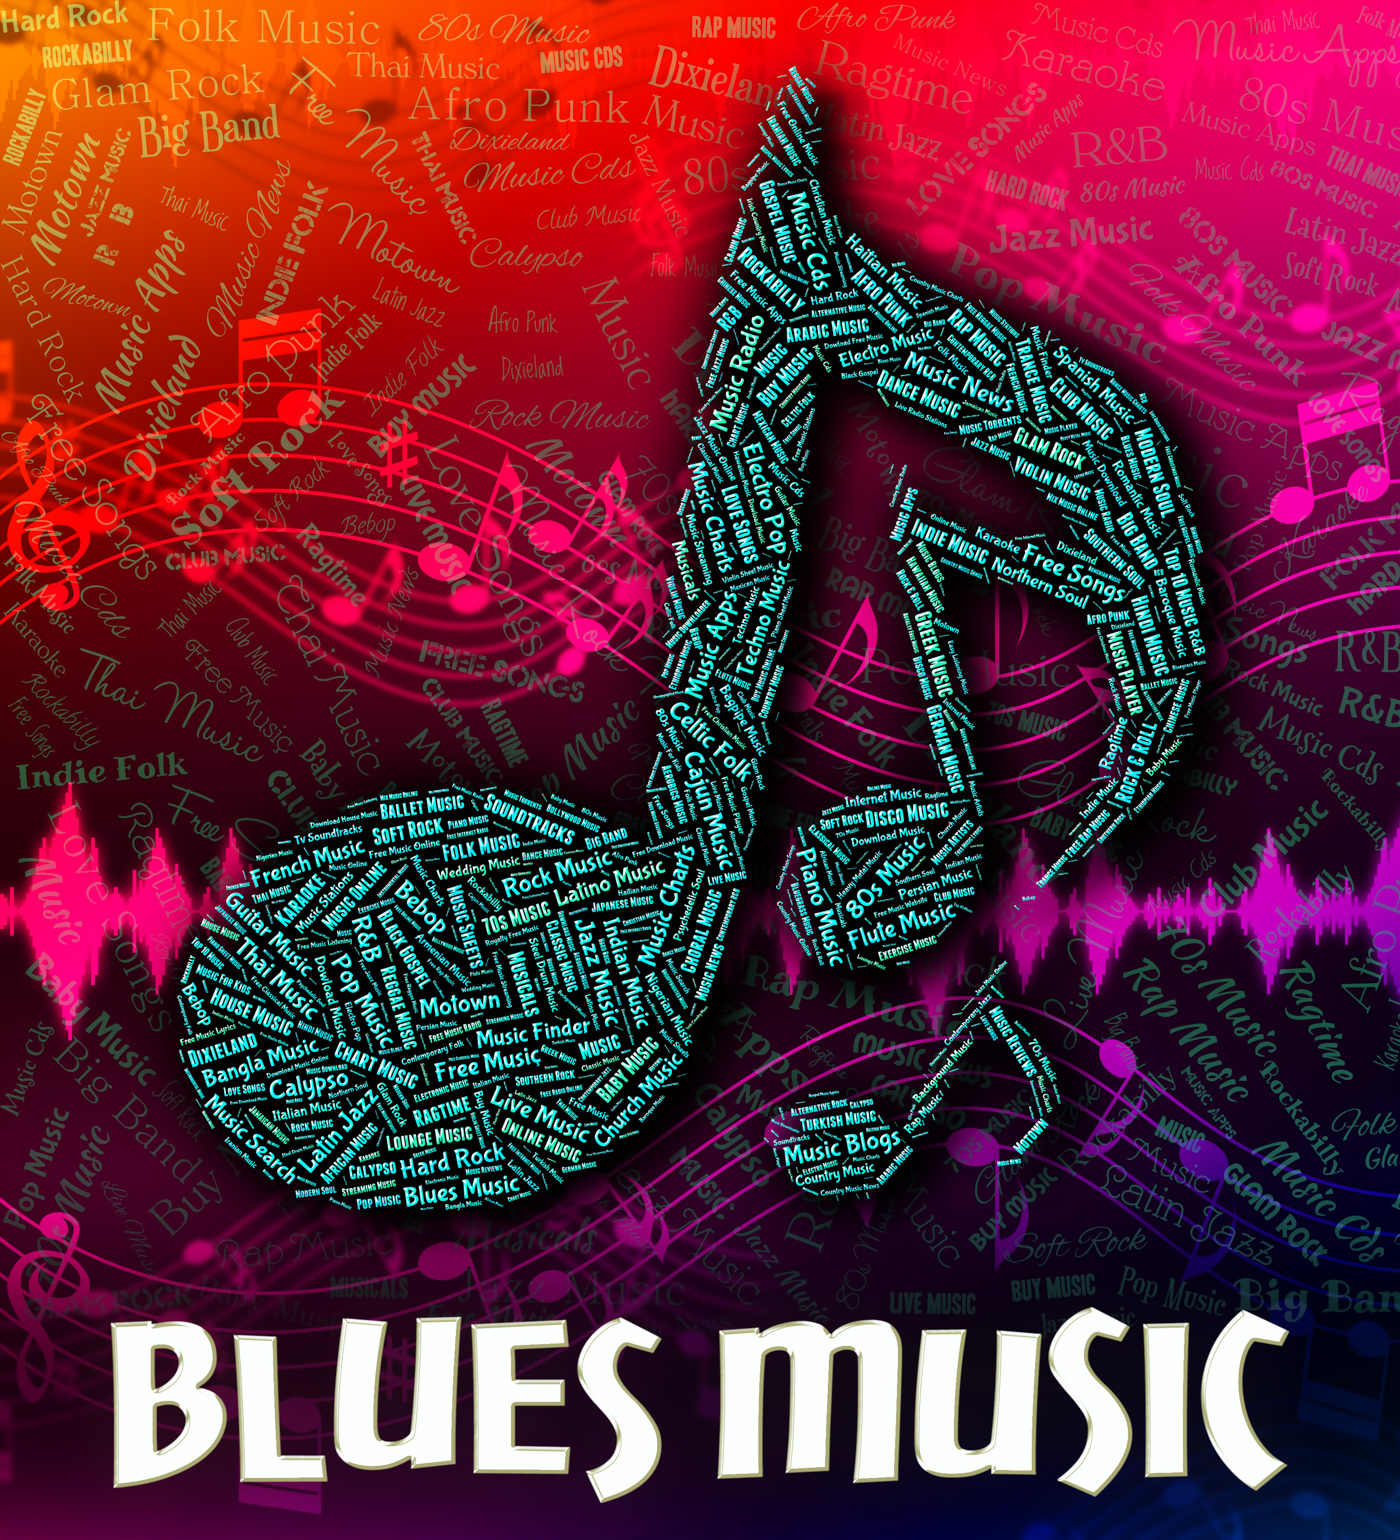 Blues music represents sound tracks and acoustic photo